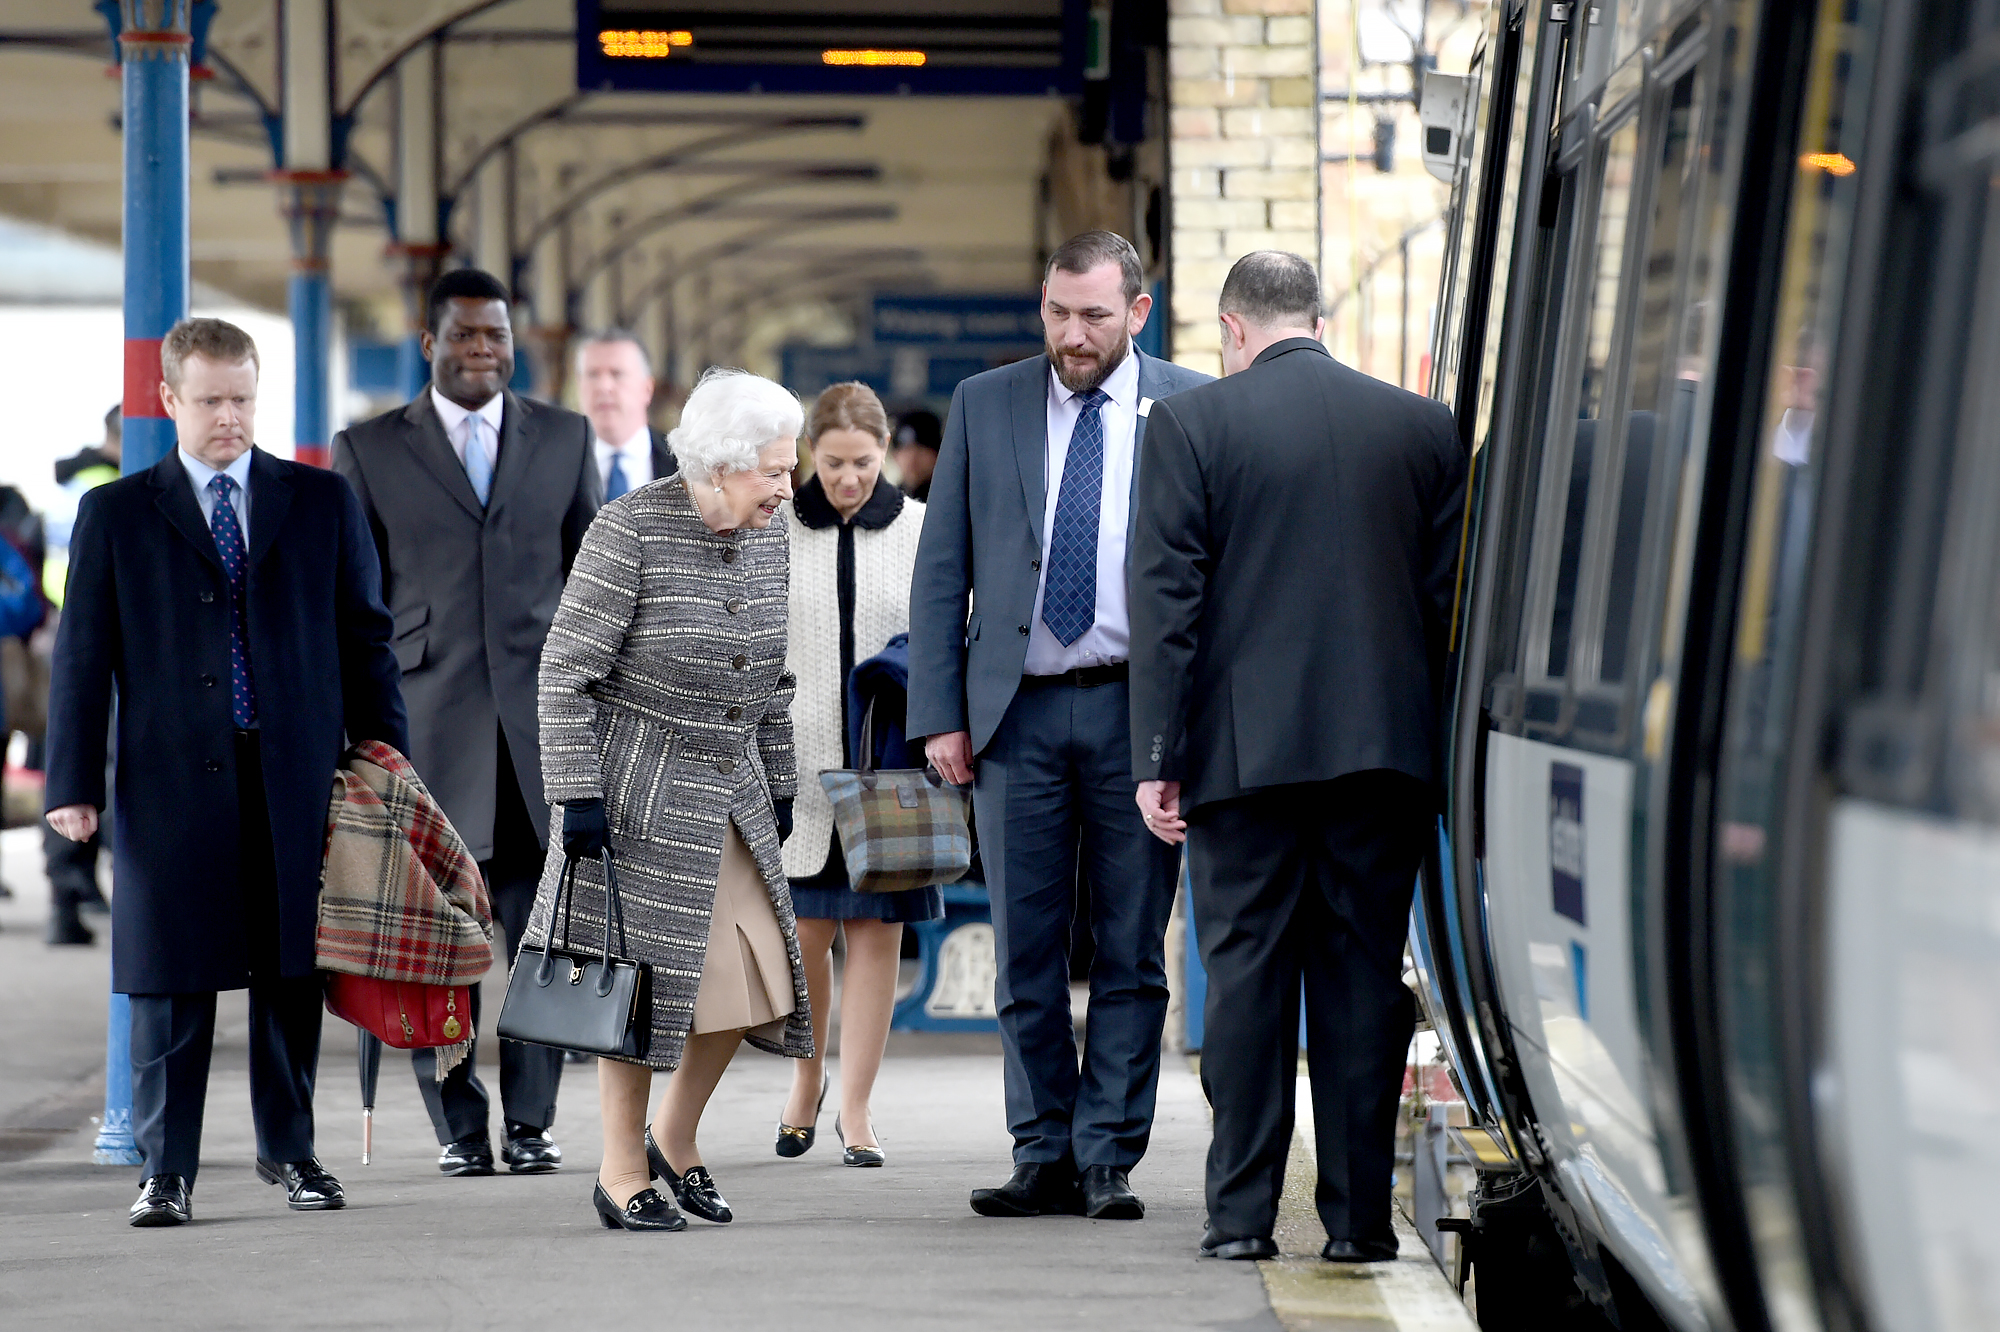 Queen-Elizabeth-Kings-Lynn-Railway-Station-4 - The queen typically returns from Sandringham on the first weekday after the anniversary of her father's death on February 6 but reportedly delayed her trip to London this year to spend more time with Philip.